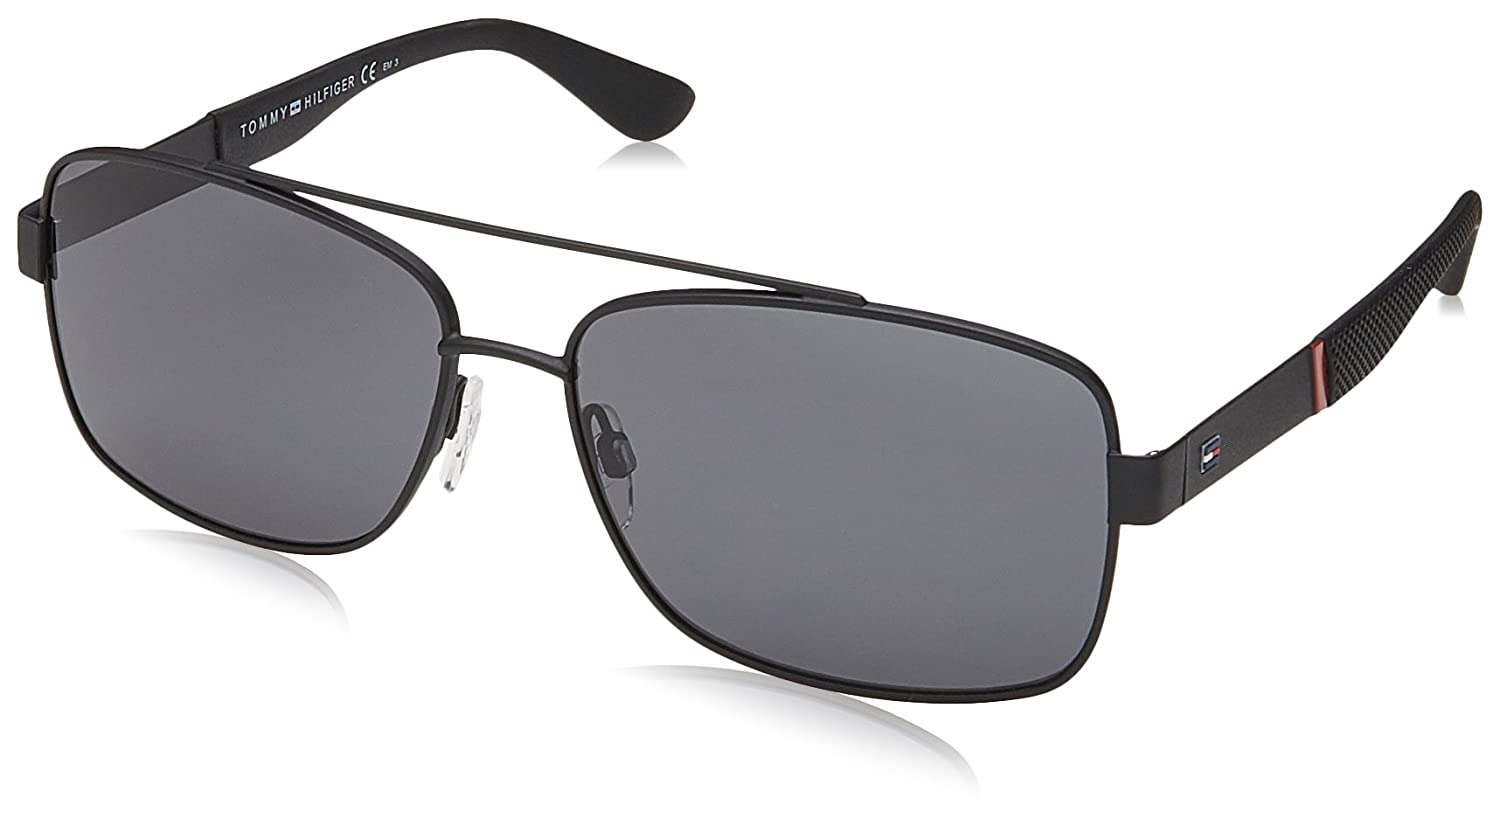 f23ece5de2c Tommy Hilfiger TH 1521 S MATTE BLACK GREY men Sunglasses  Tommy Hilfiger   Amazon.ca  Clothing   Accessories